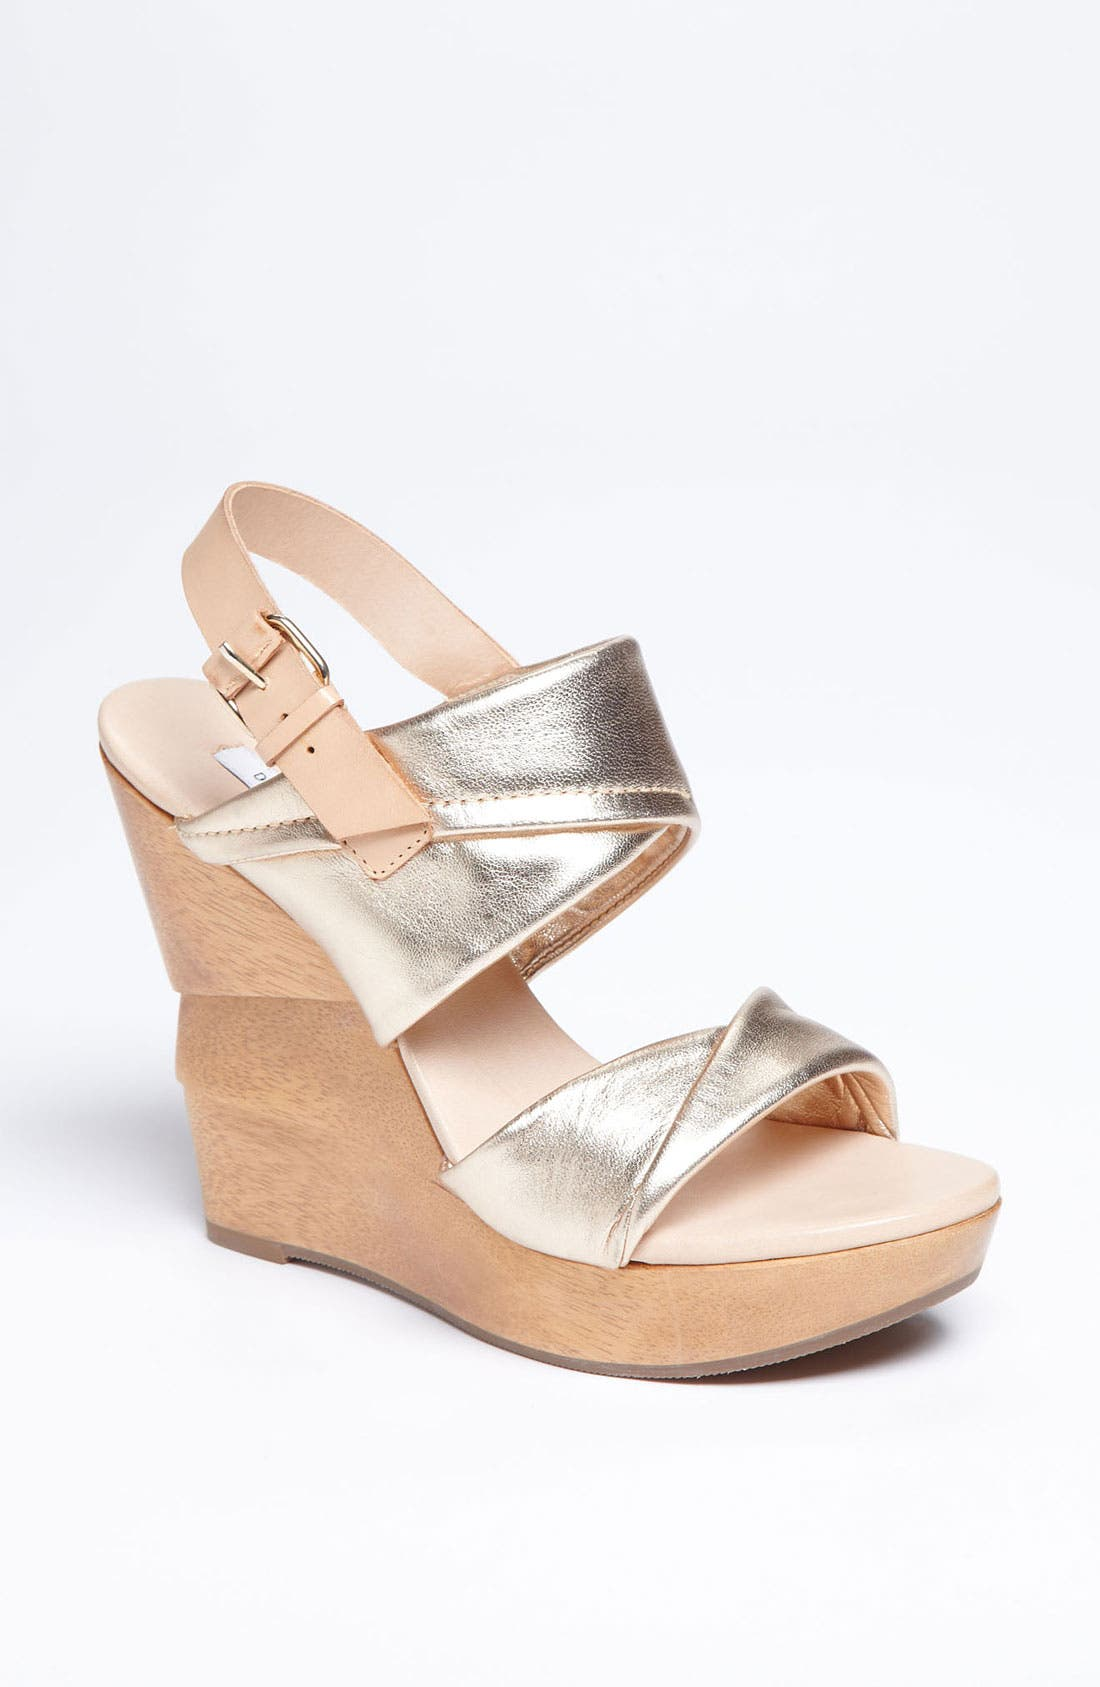 Alternate Image 1 Selected - Diane von Furstenberg 'Ophelia' Sandal